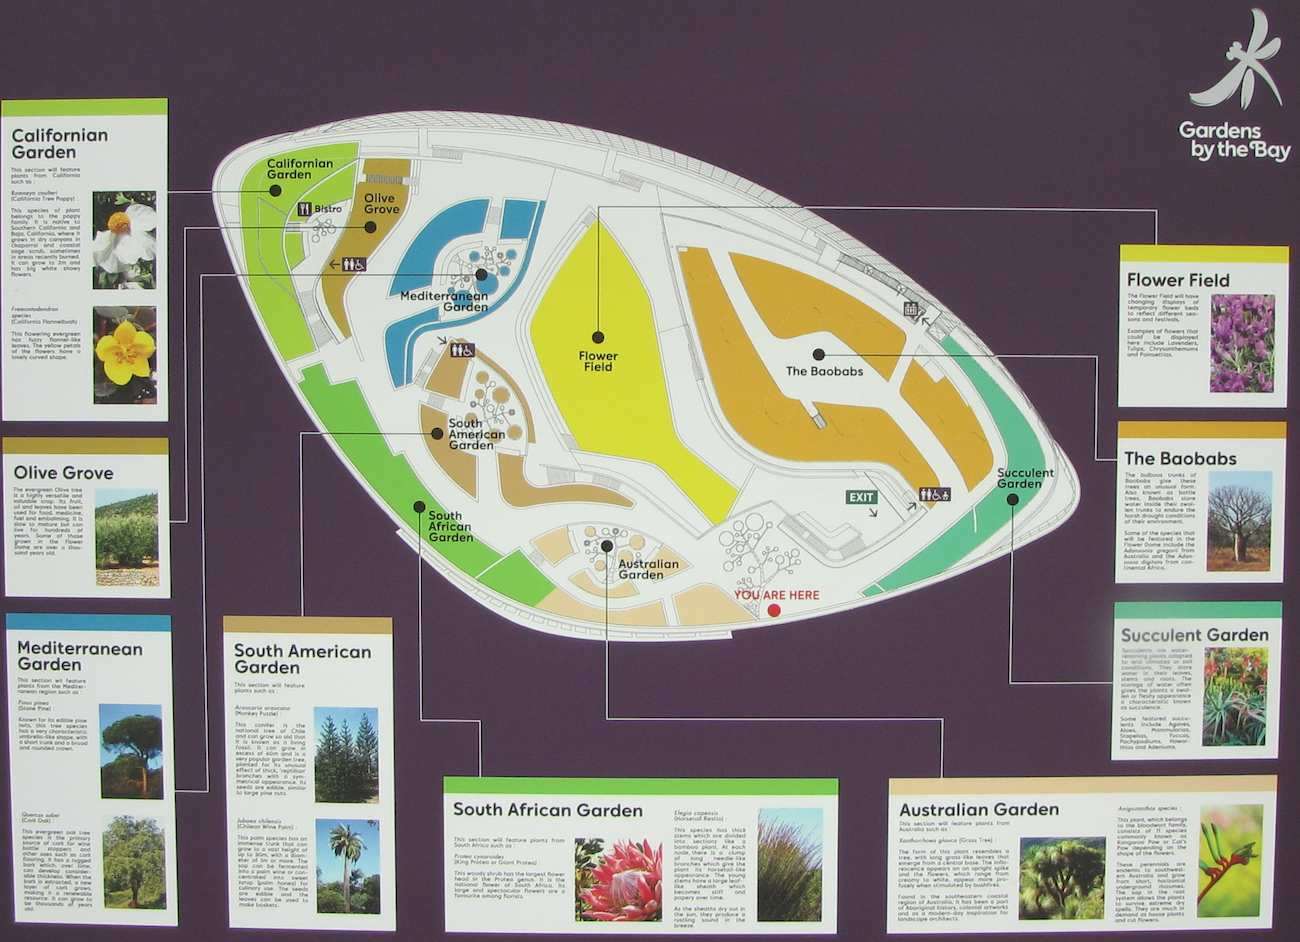 photo of the Flower Dome layout of Gardens by the Bay, Singapore